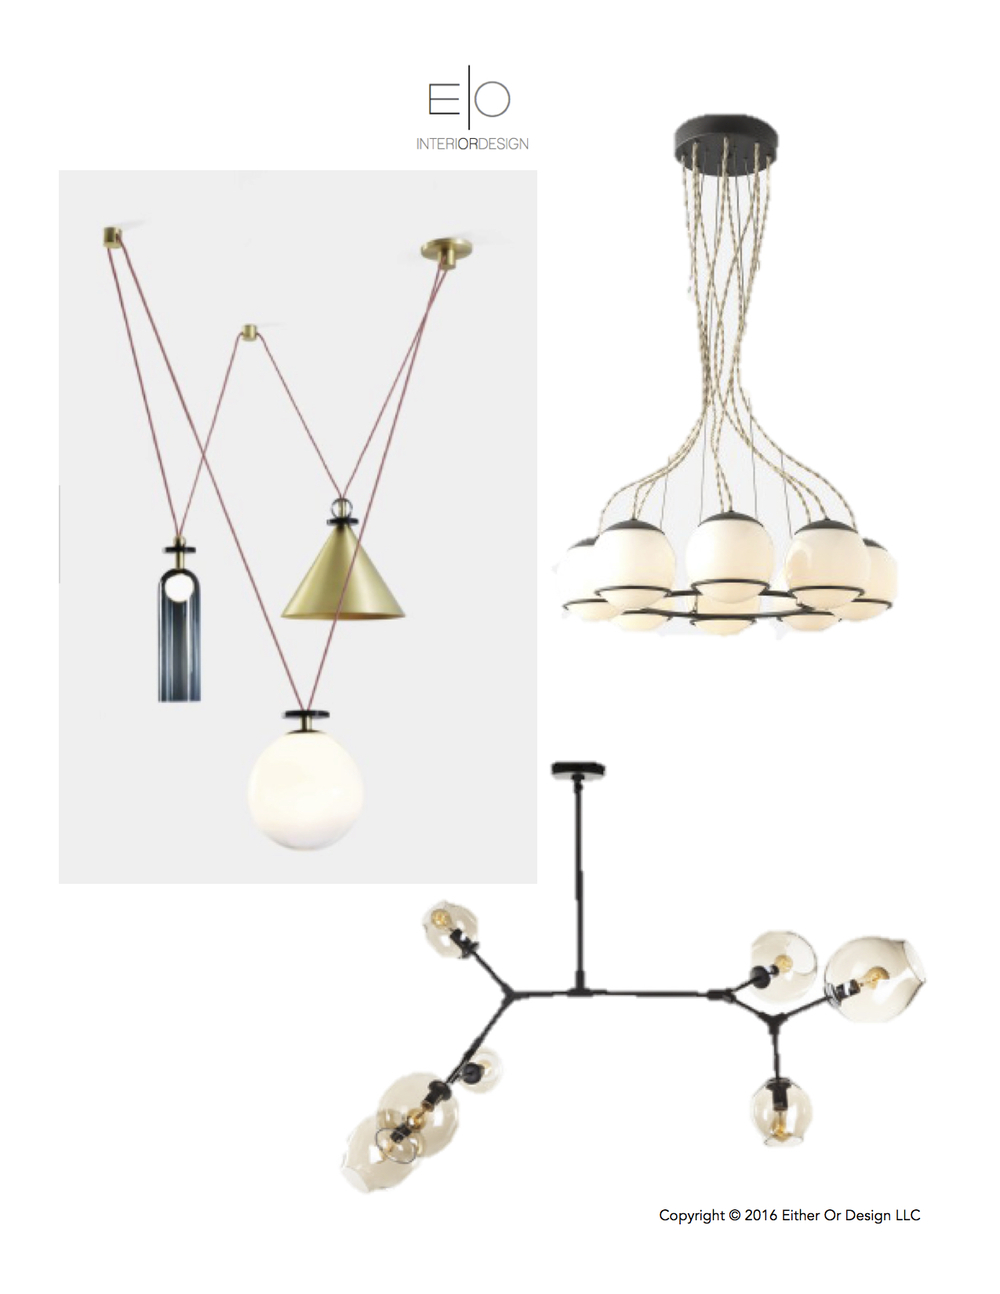 Pendant Lights EO.jpg